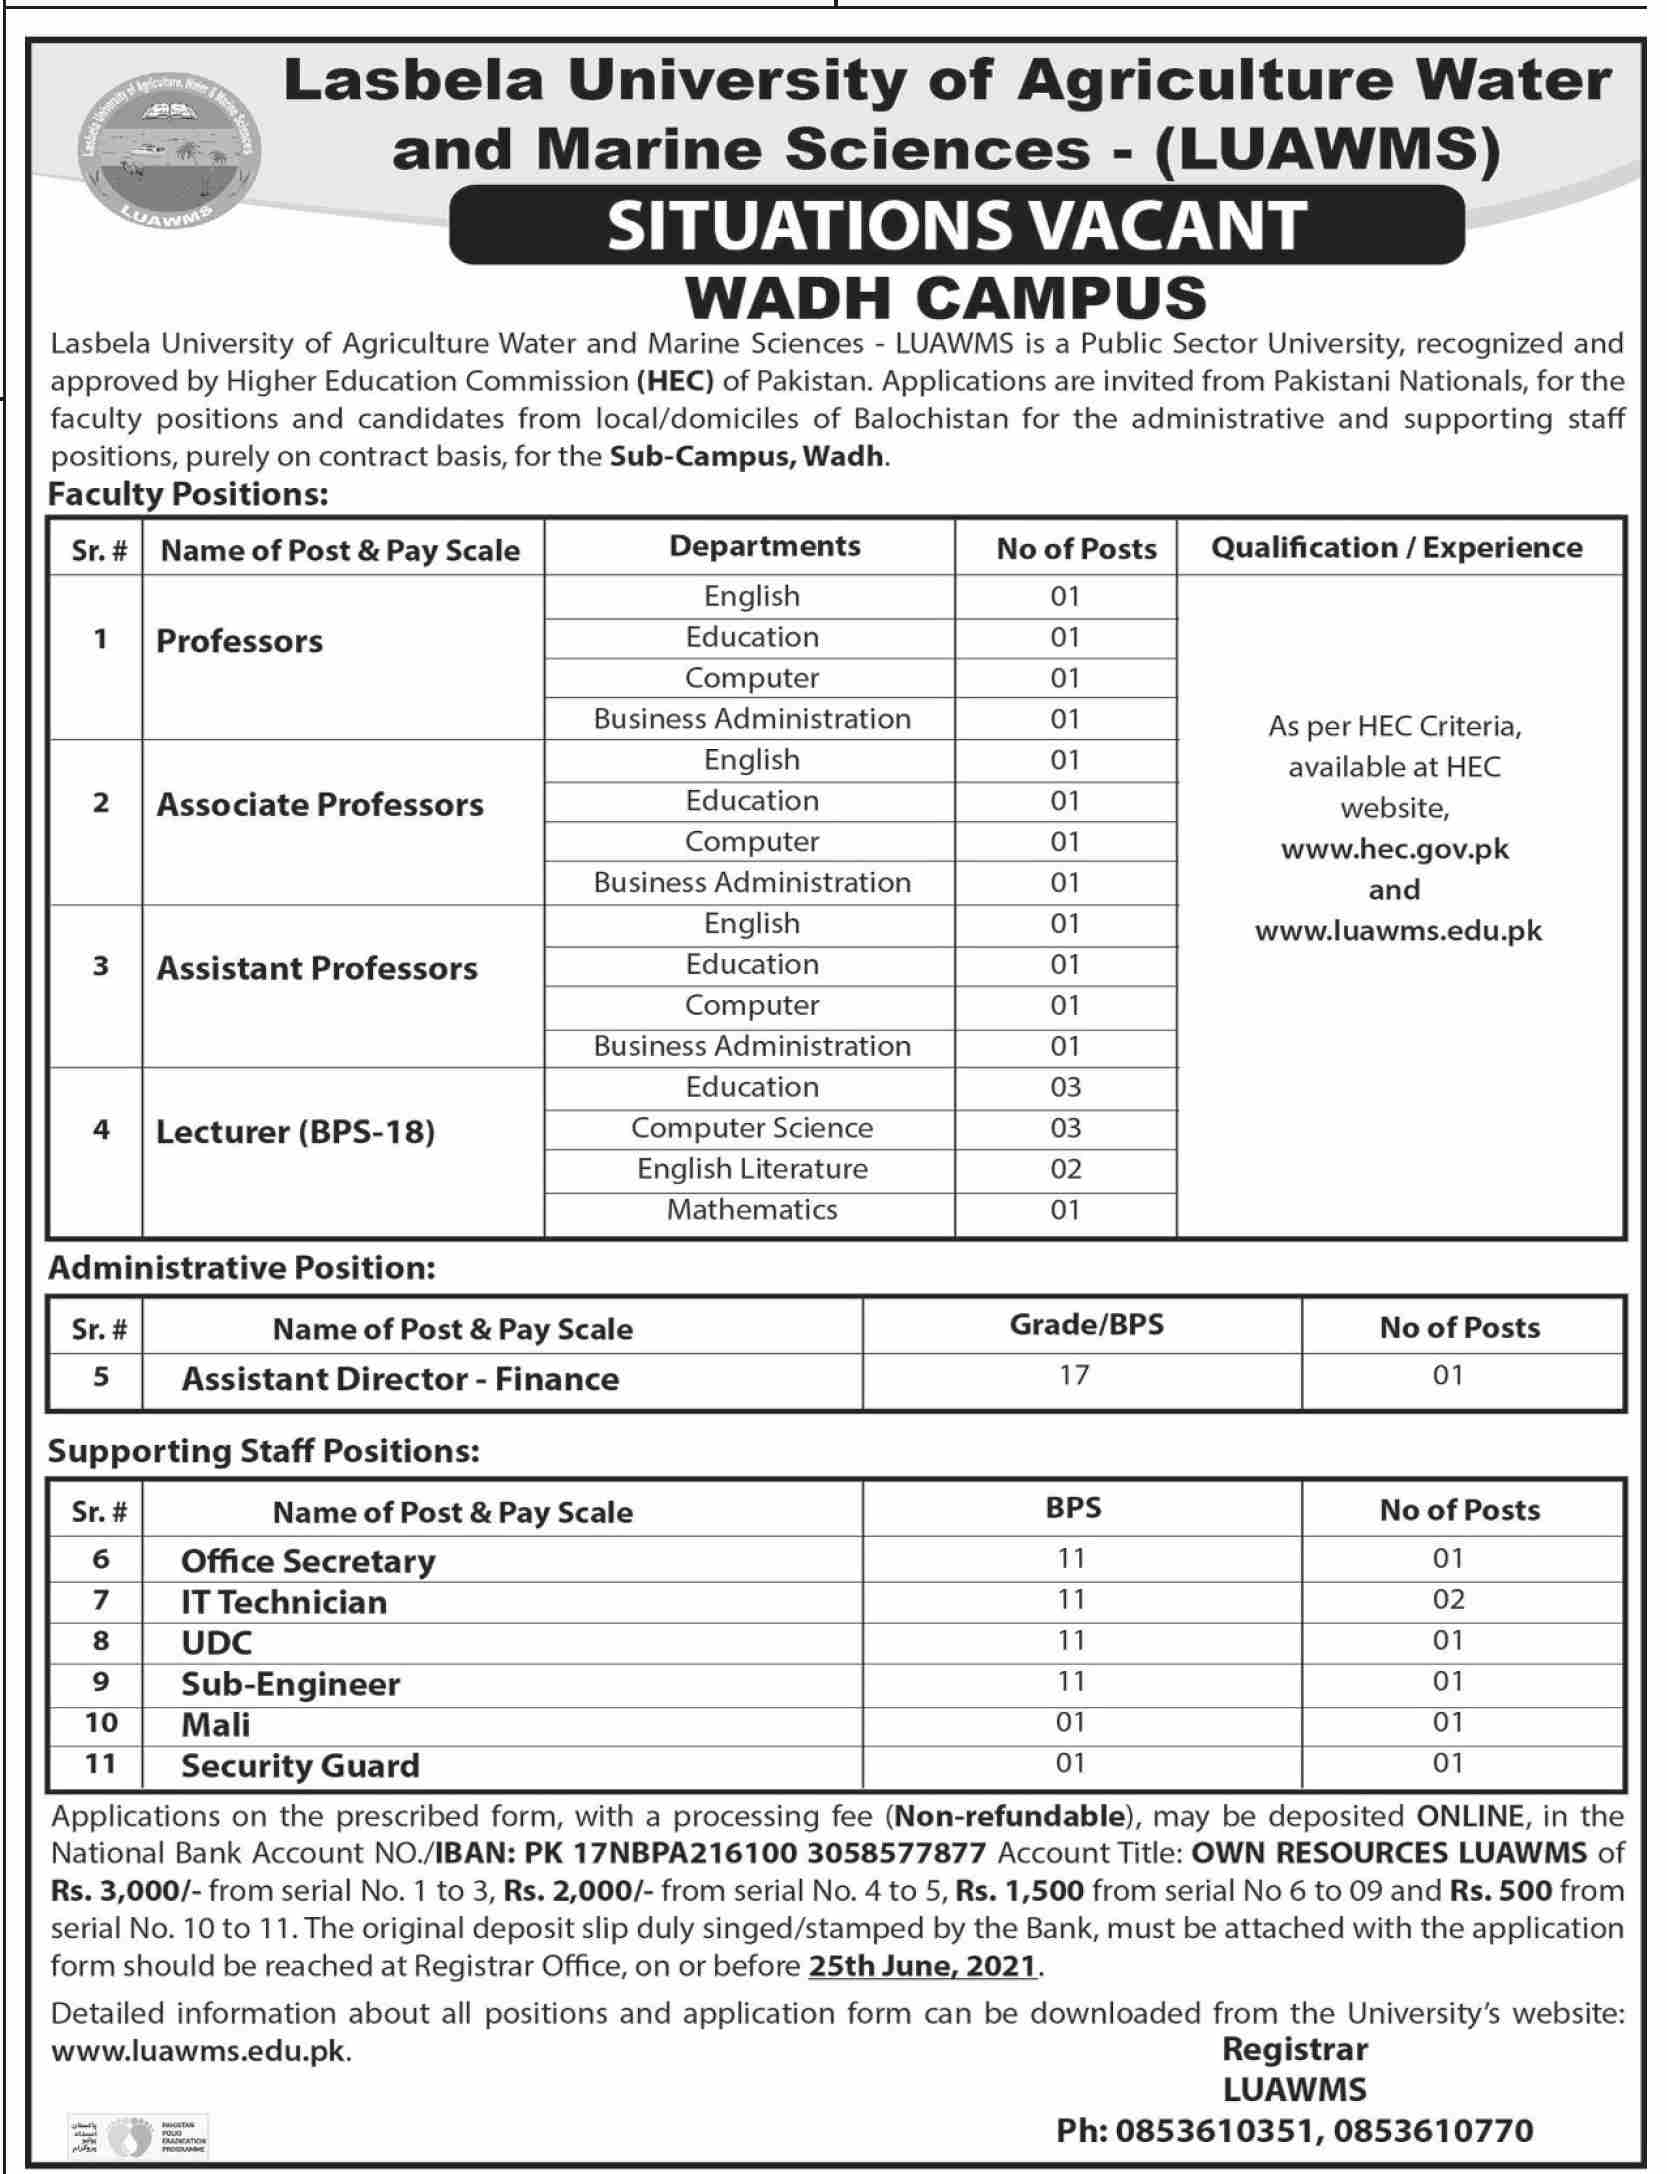 Lasbela University of Agriculture Water and Marine Sciences LUAWMS Jobs June 2021